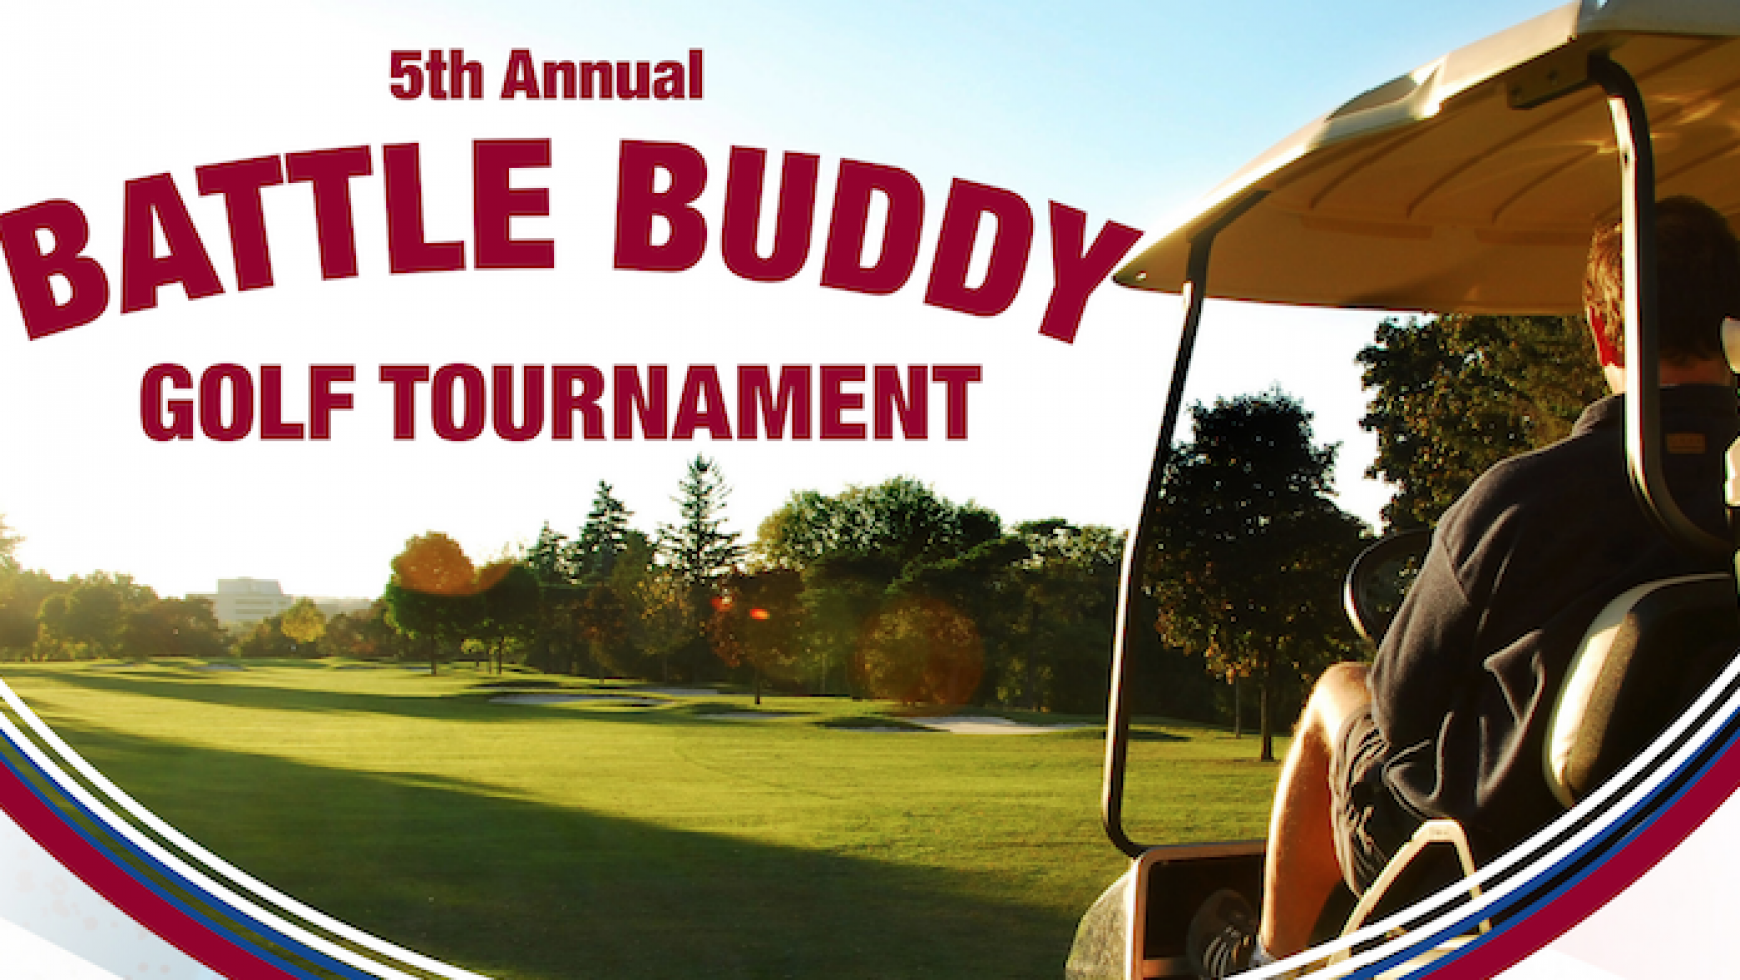 Register for the 5th Annual Battle Buddy Golf Tournament